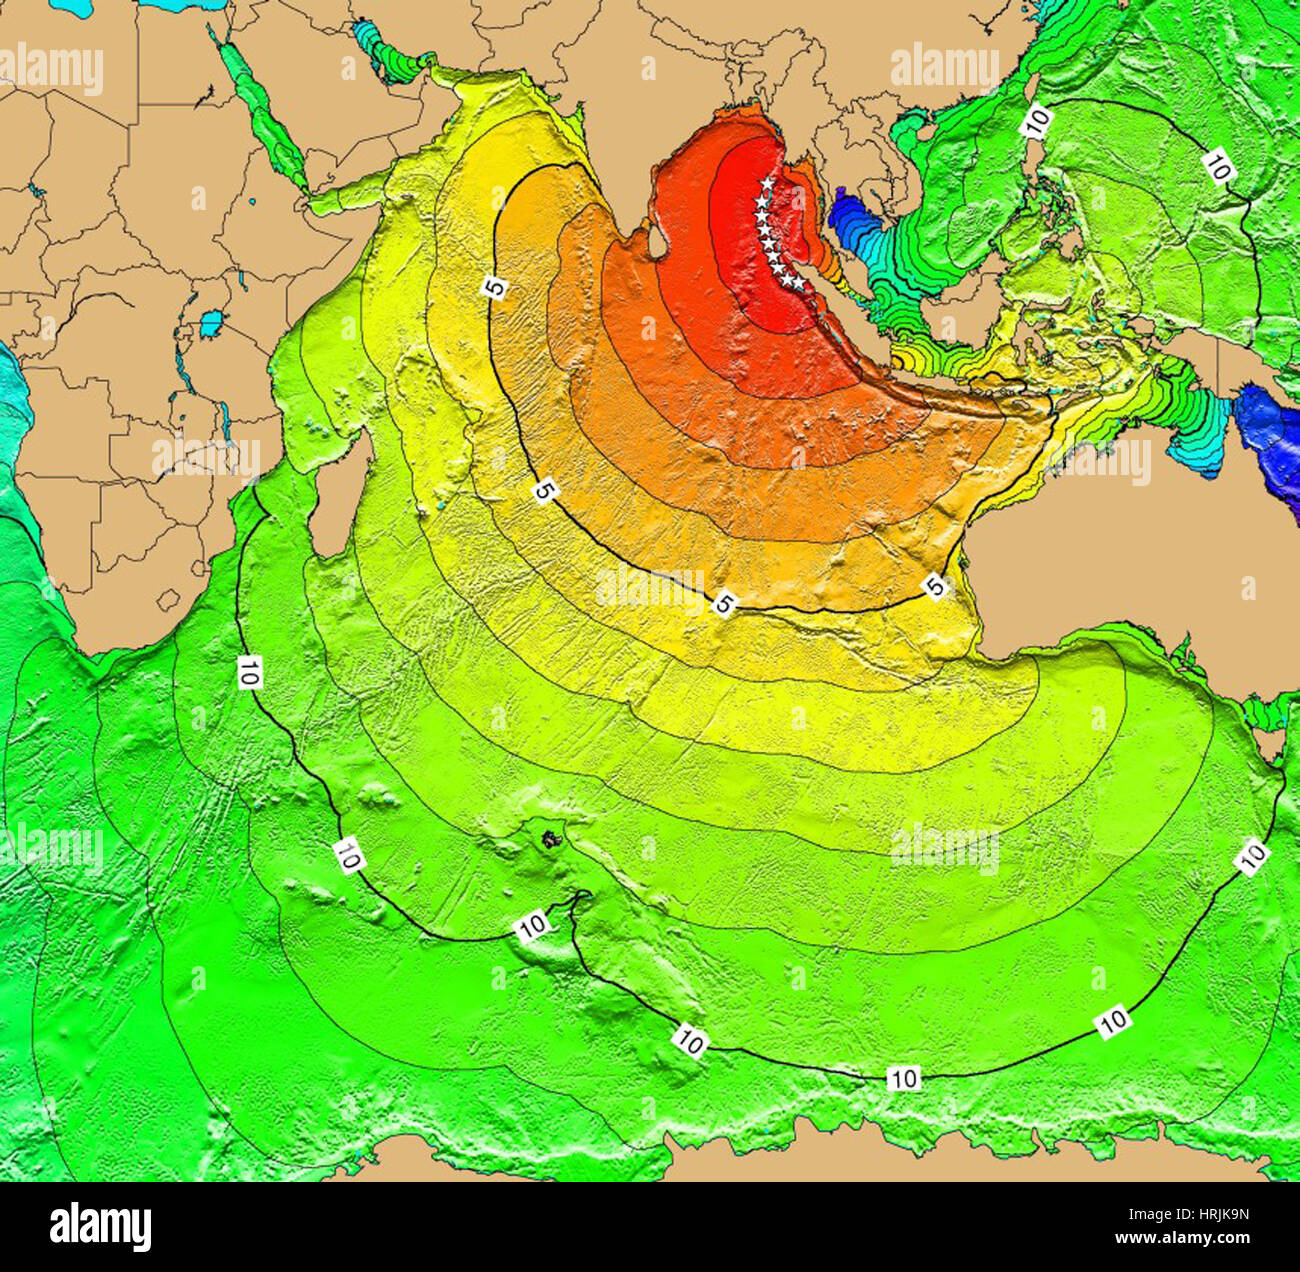 Tsunami map sumatra earthquake 2004 stock photo 135019969 alamy tsunami map sumatra earthquake 2004 gumiabroncs Gallery